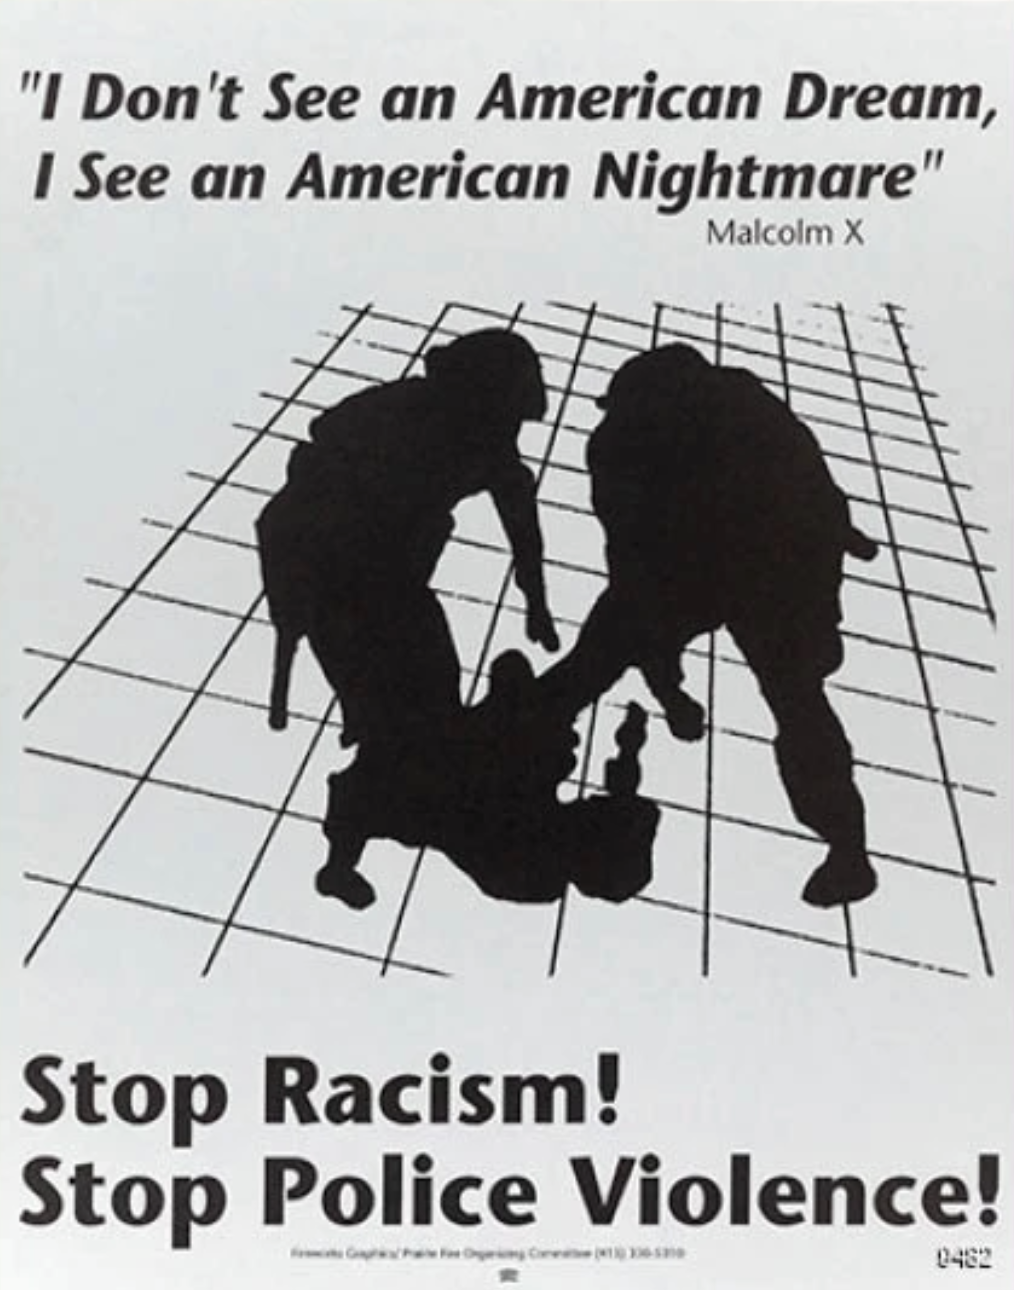 illustrational poster of silhouettes of a black man being beaten by police